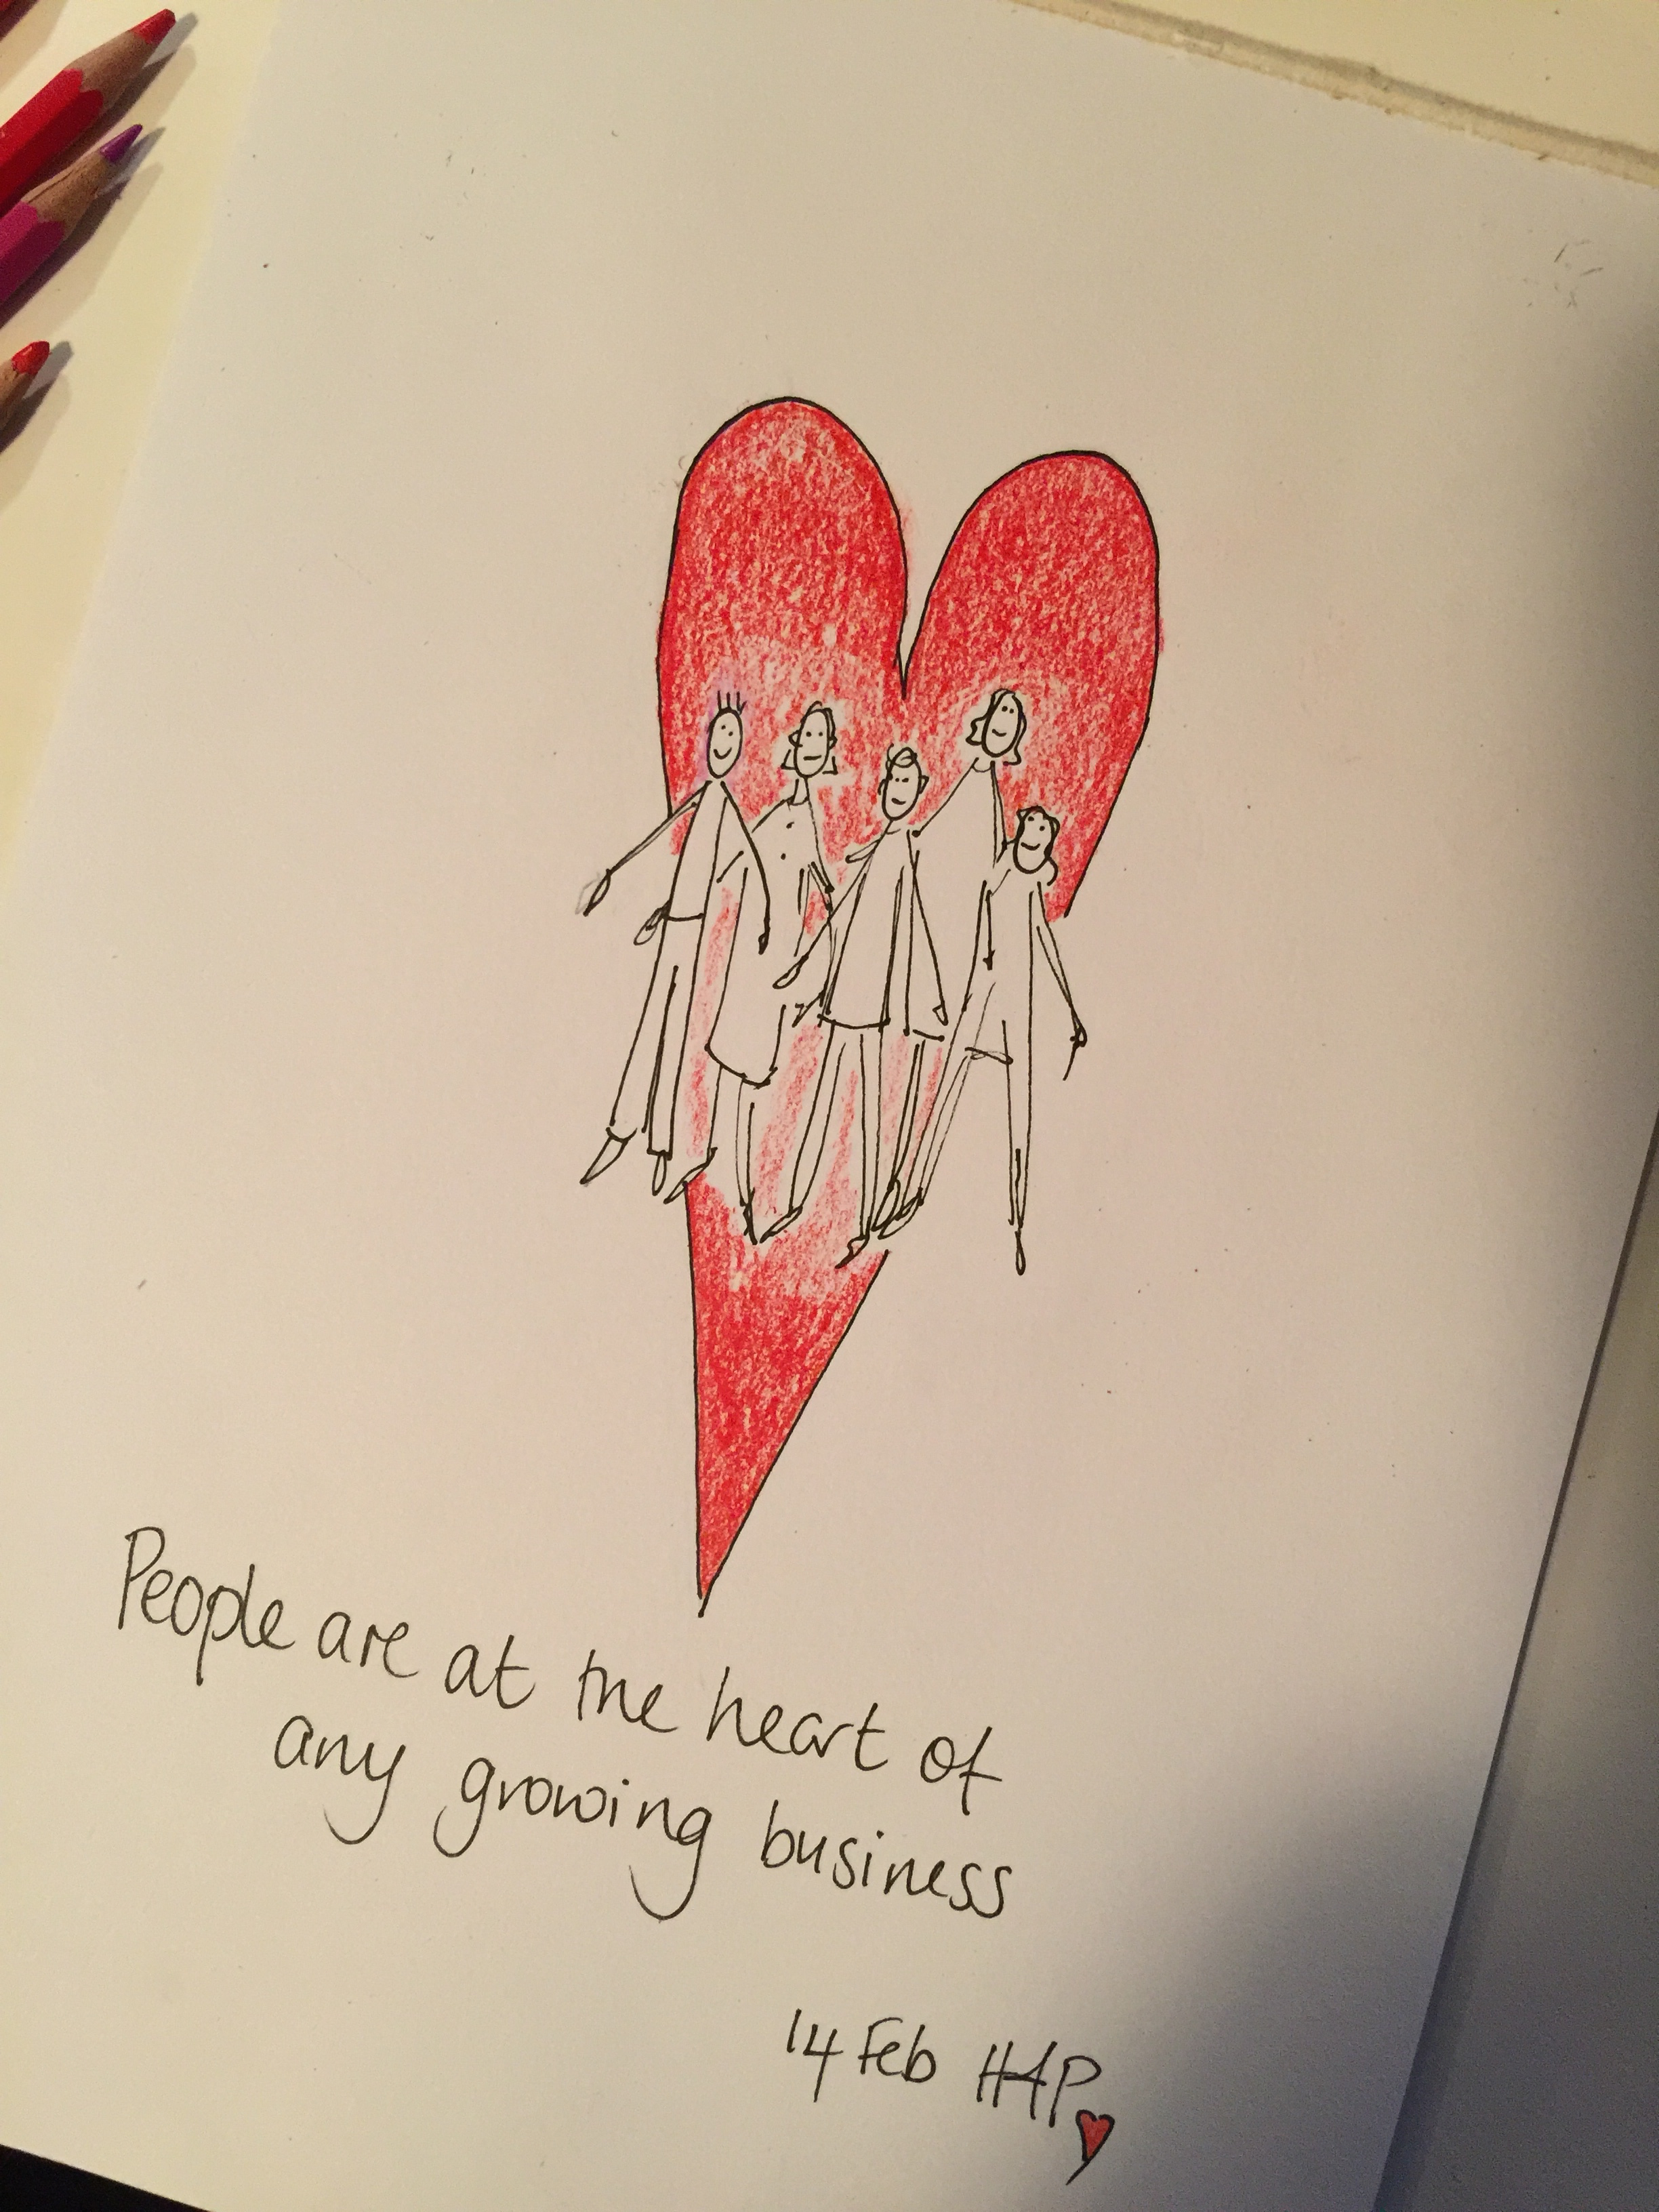 People at the heart